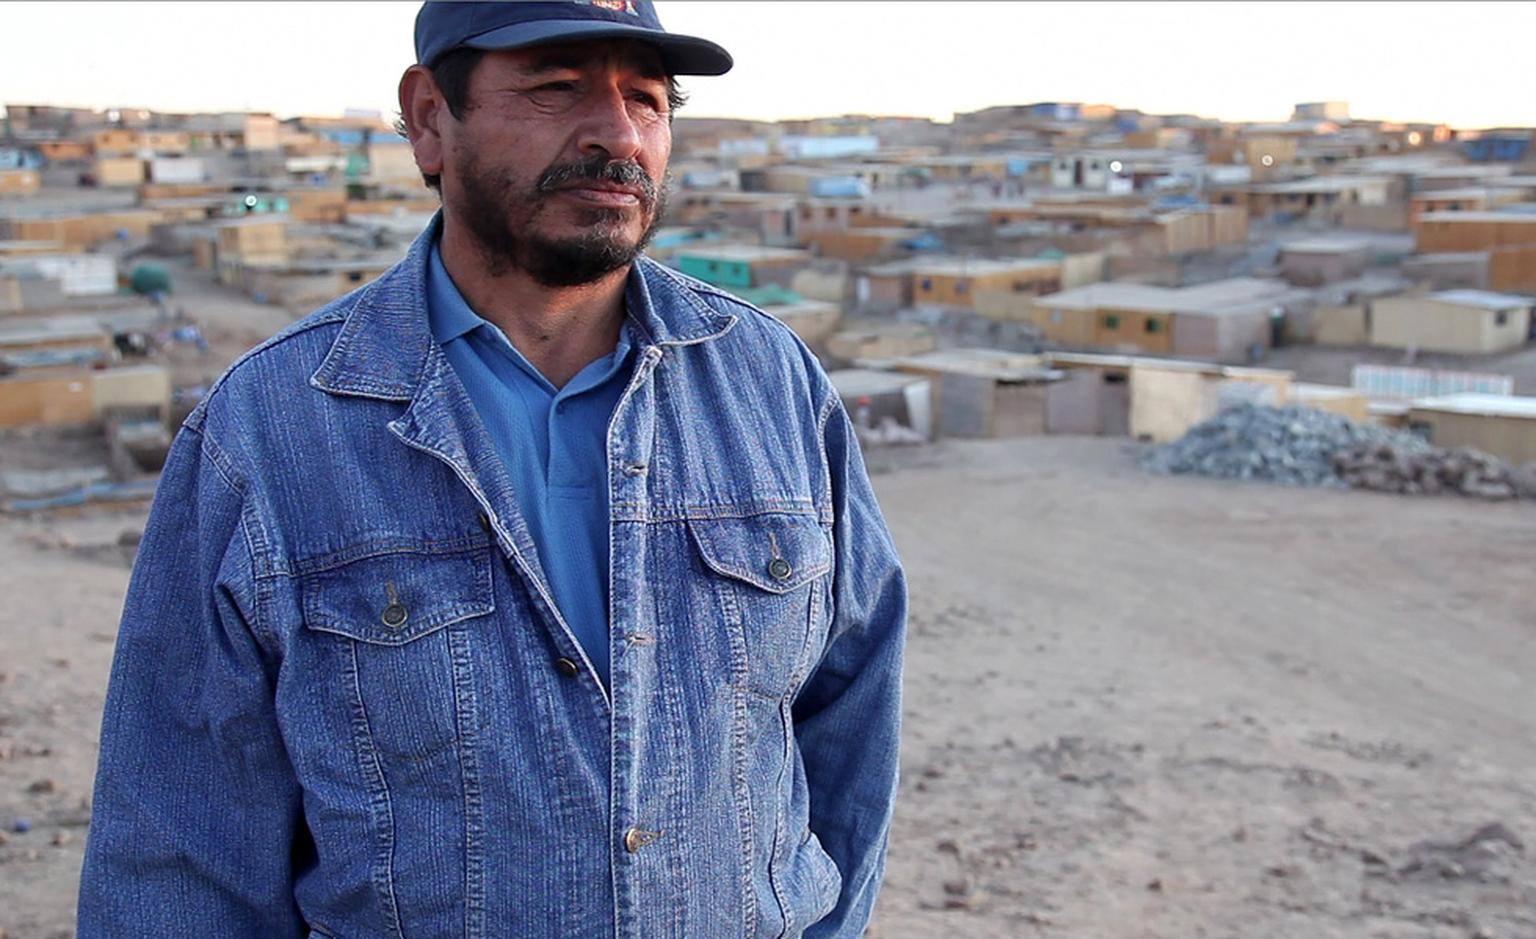 Manuel Reinoso Rivas, Vice-Chair of Alliance for Responsible Mining, from Peru has been an artisanal miner since 1993 and has been active in formalising the rights of small scale miners in his country and abroad.